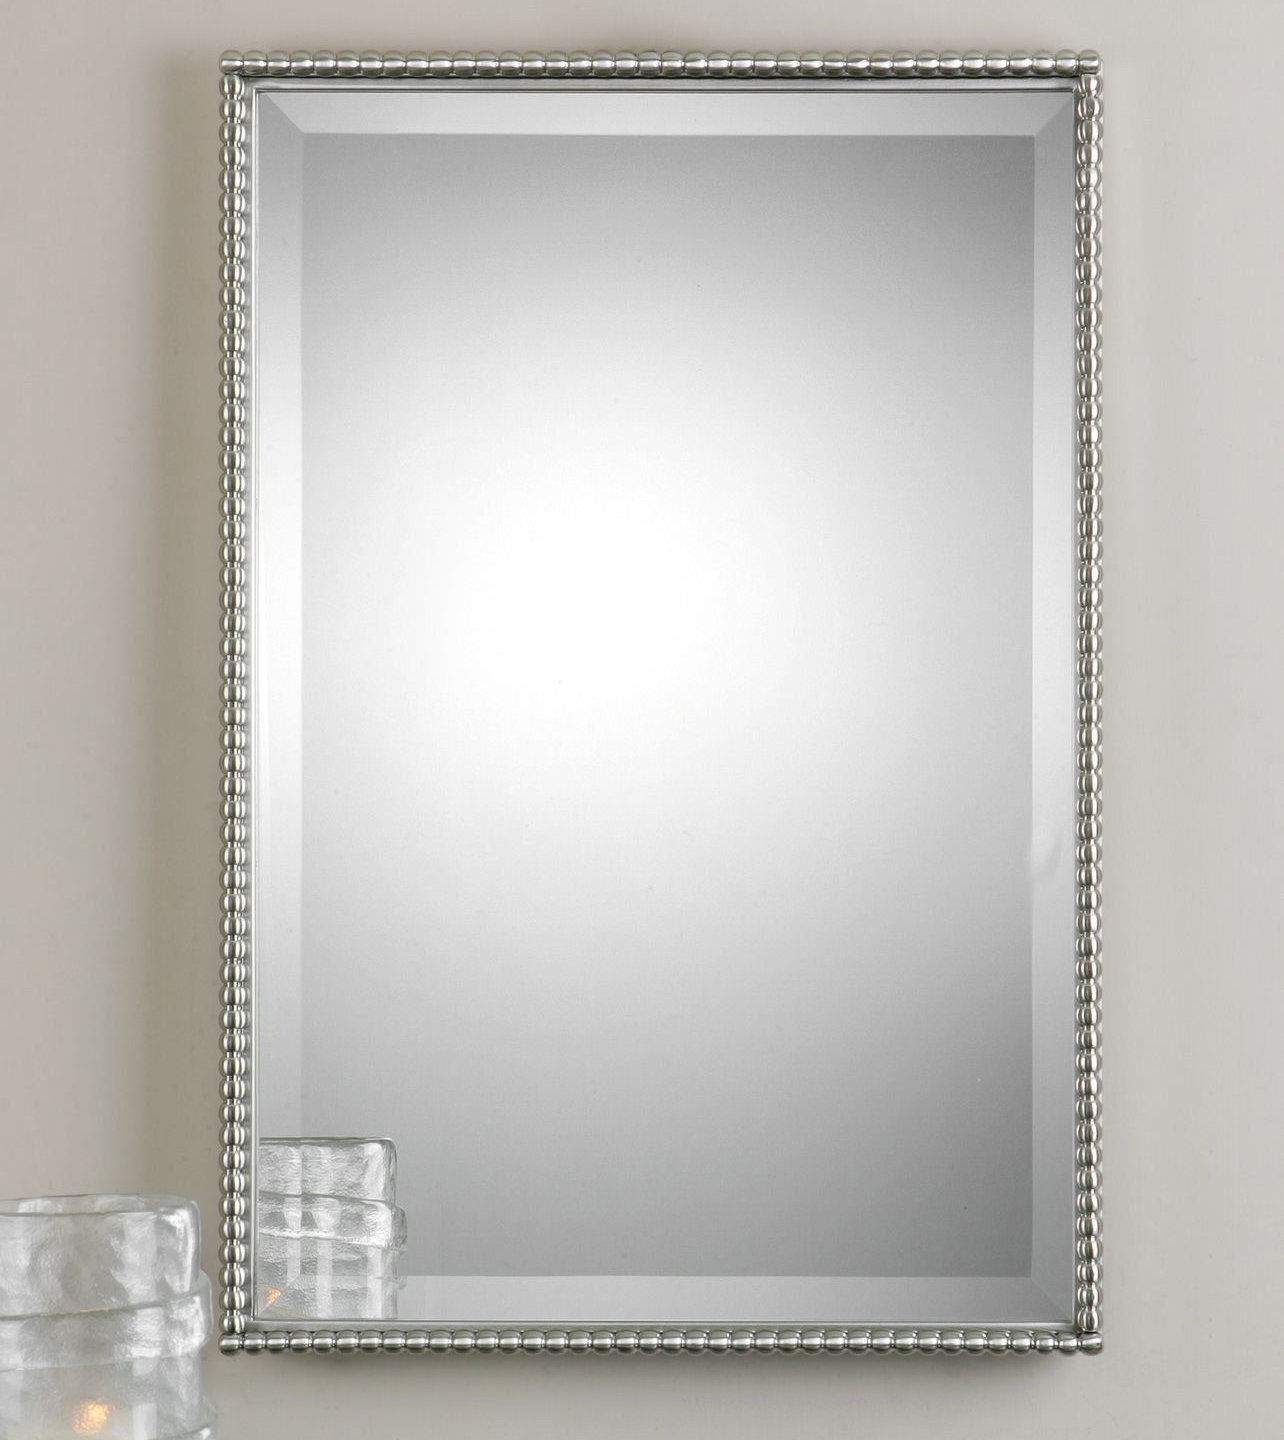 Glen View Wall Mirror Intended For Farmhouse Woodgrain And Leaf Accent Wall Mirrors (View 13 of 20)